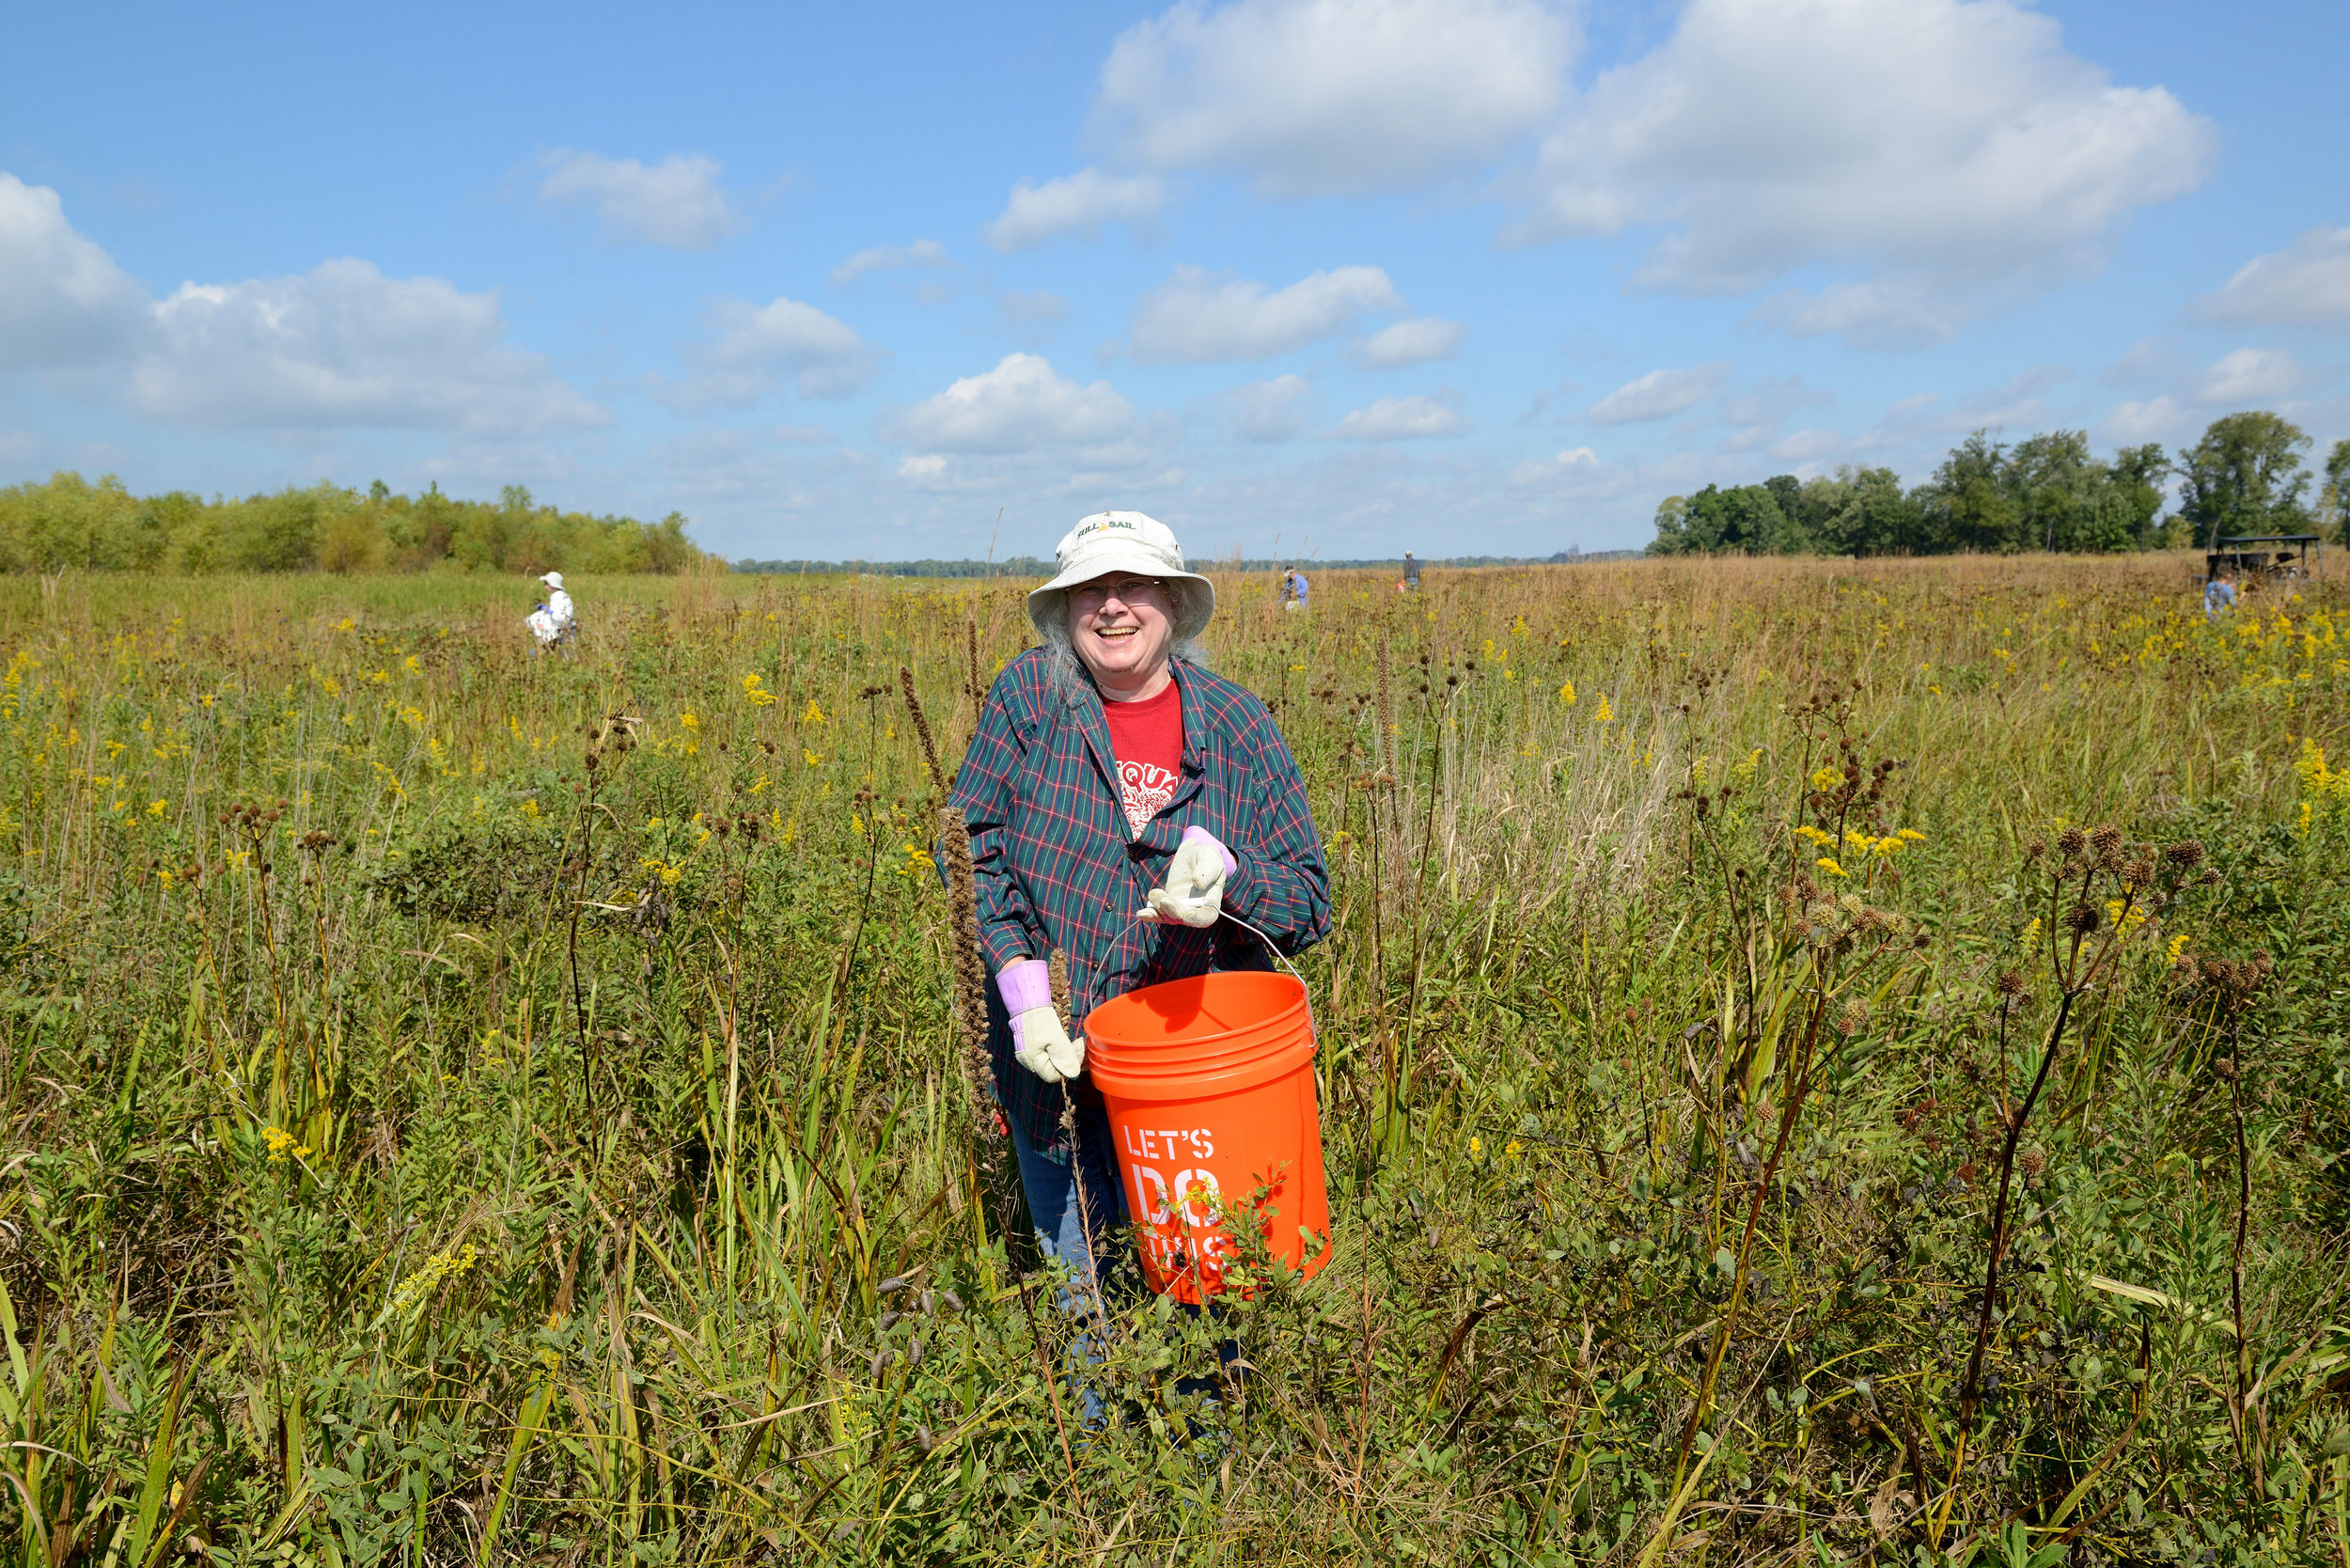 Longtime volunteer Ruby Jung lends a helping hand.